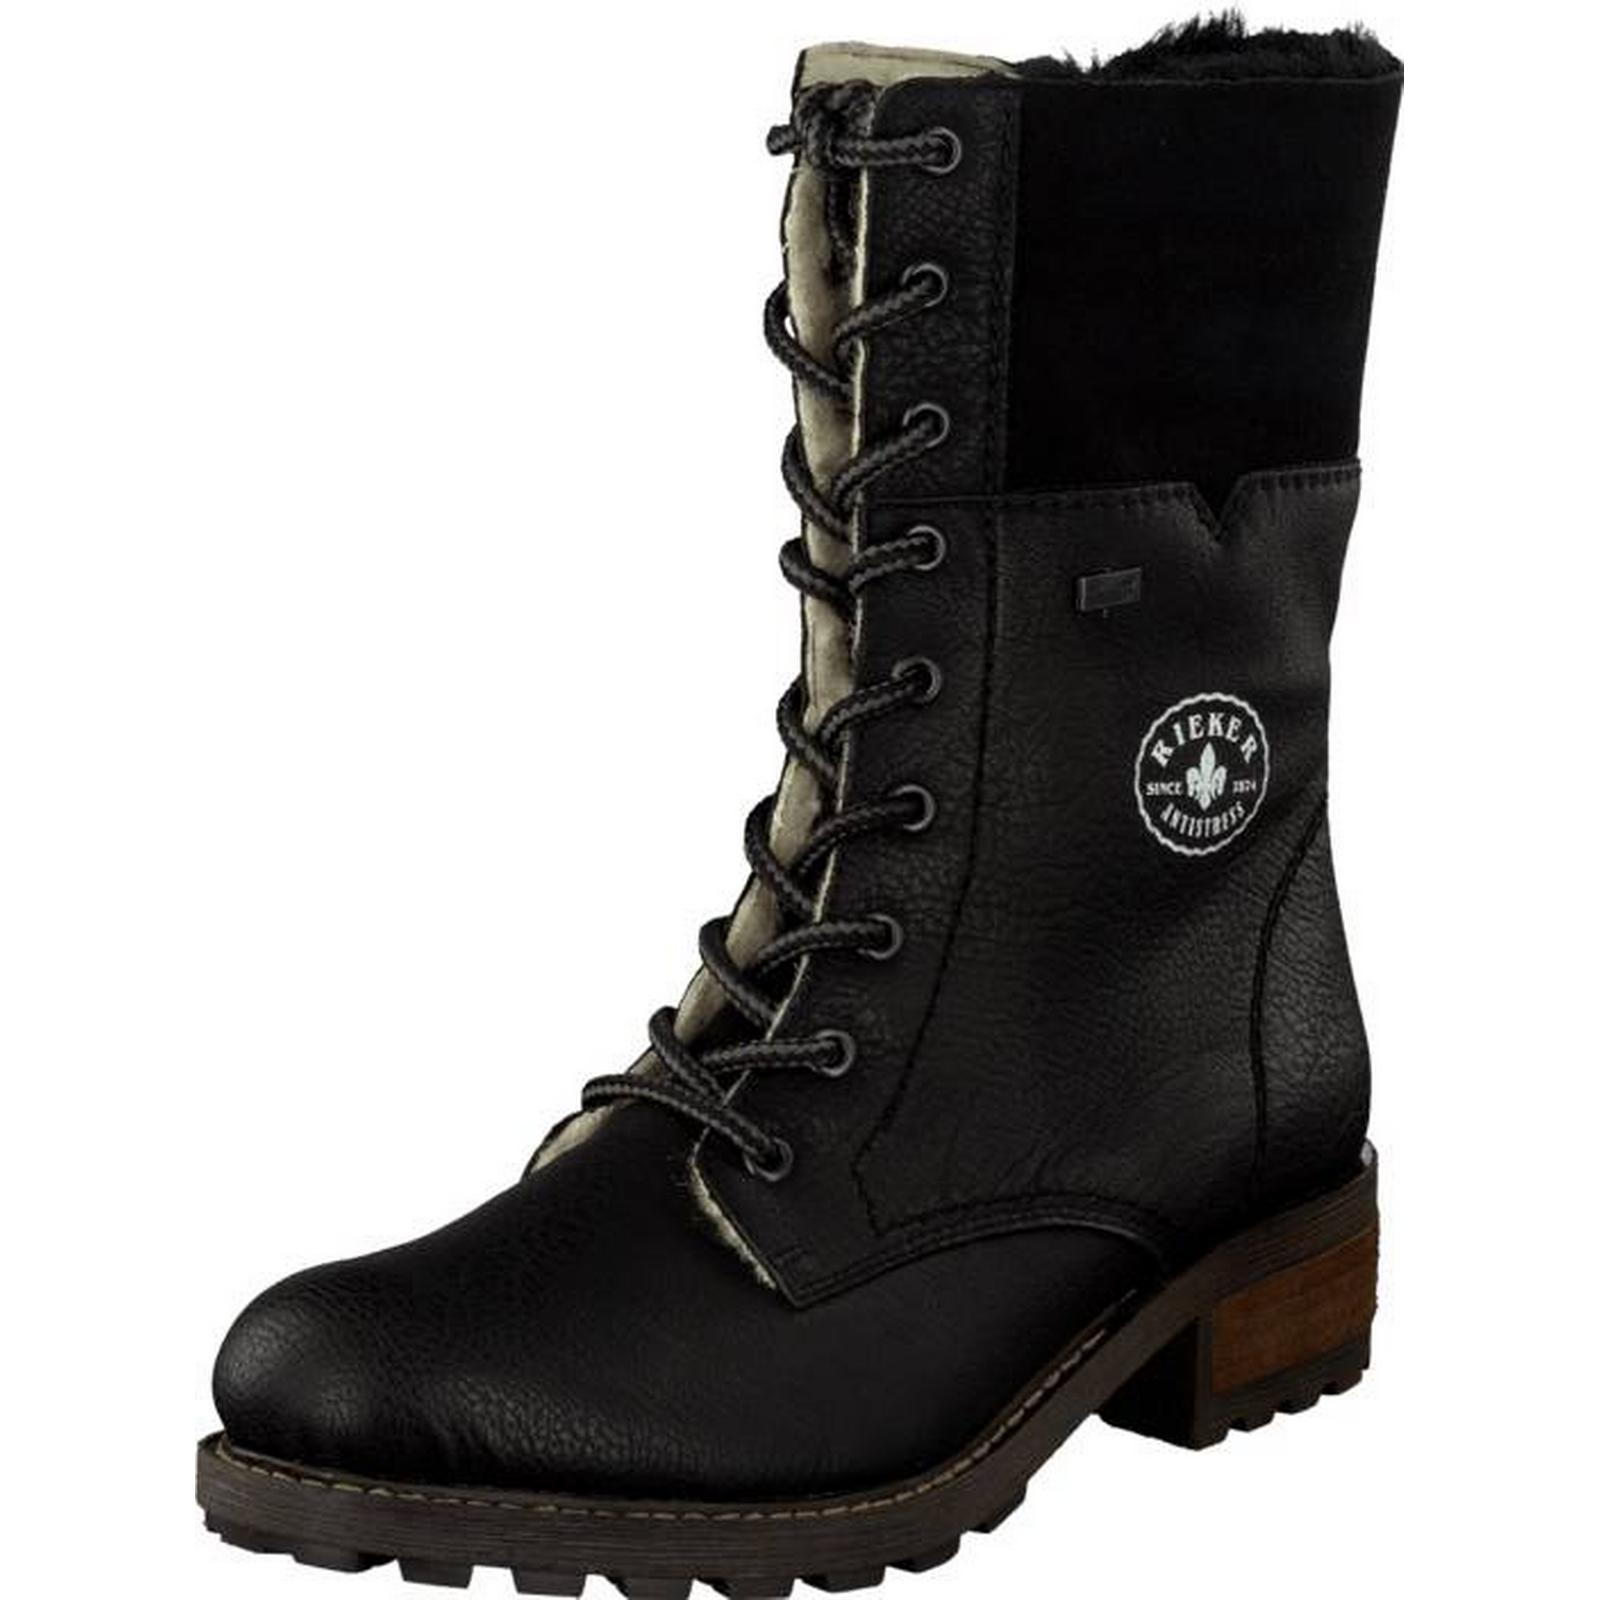 Rieker Y0422-00 Black, Shoes, Boots & Chelseas, Boots, Tall Boots, Chelseas, Black, Female, 39 e2e372